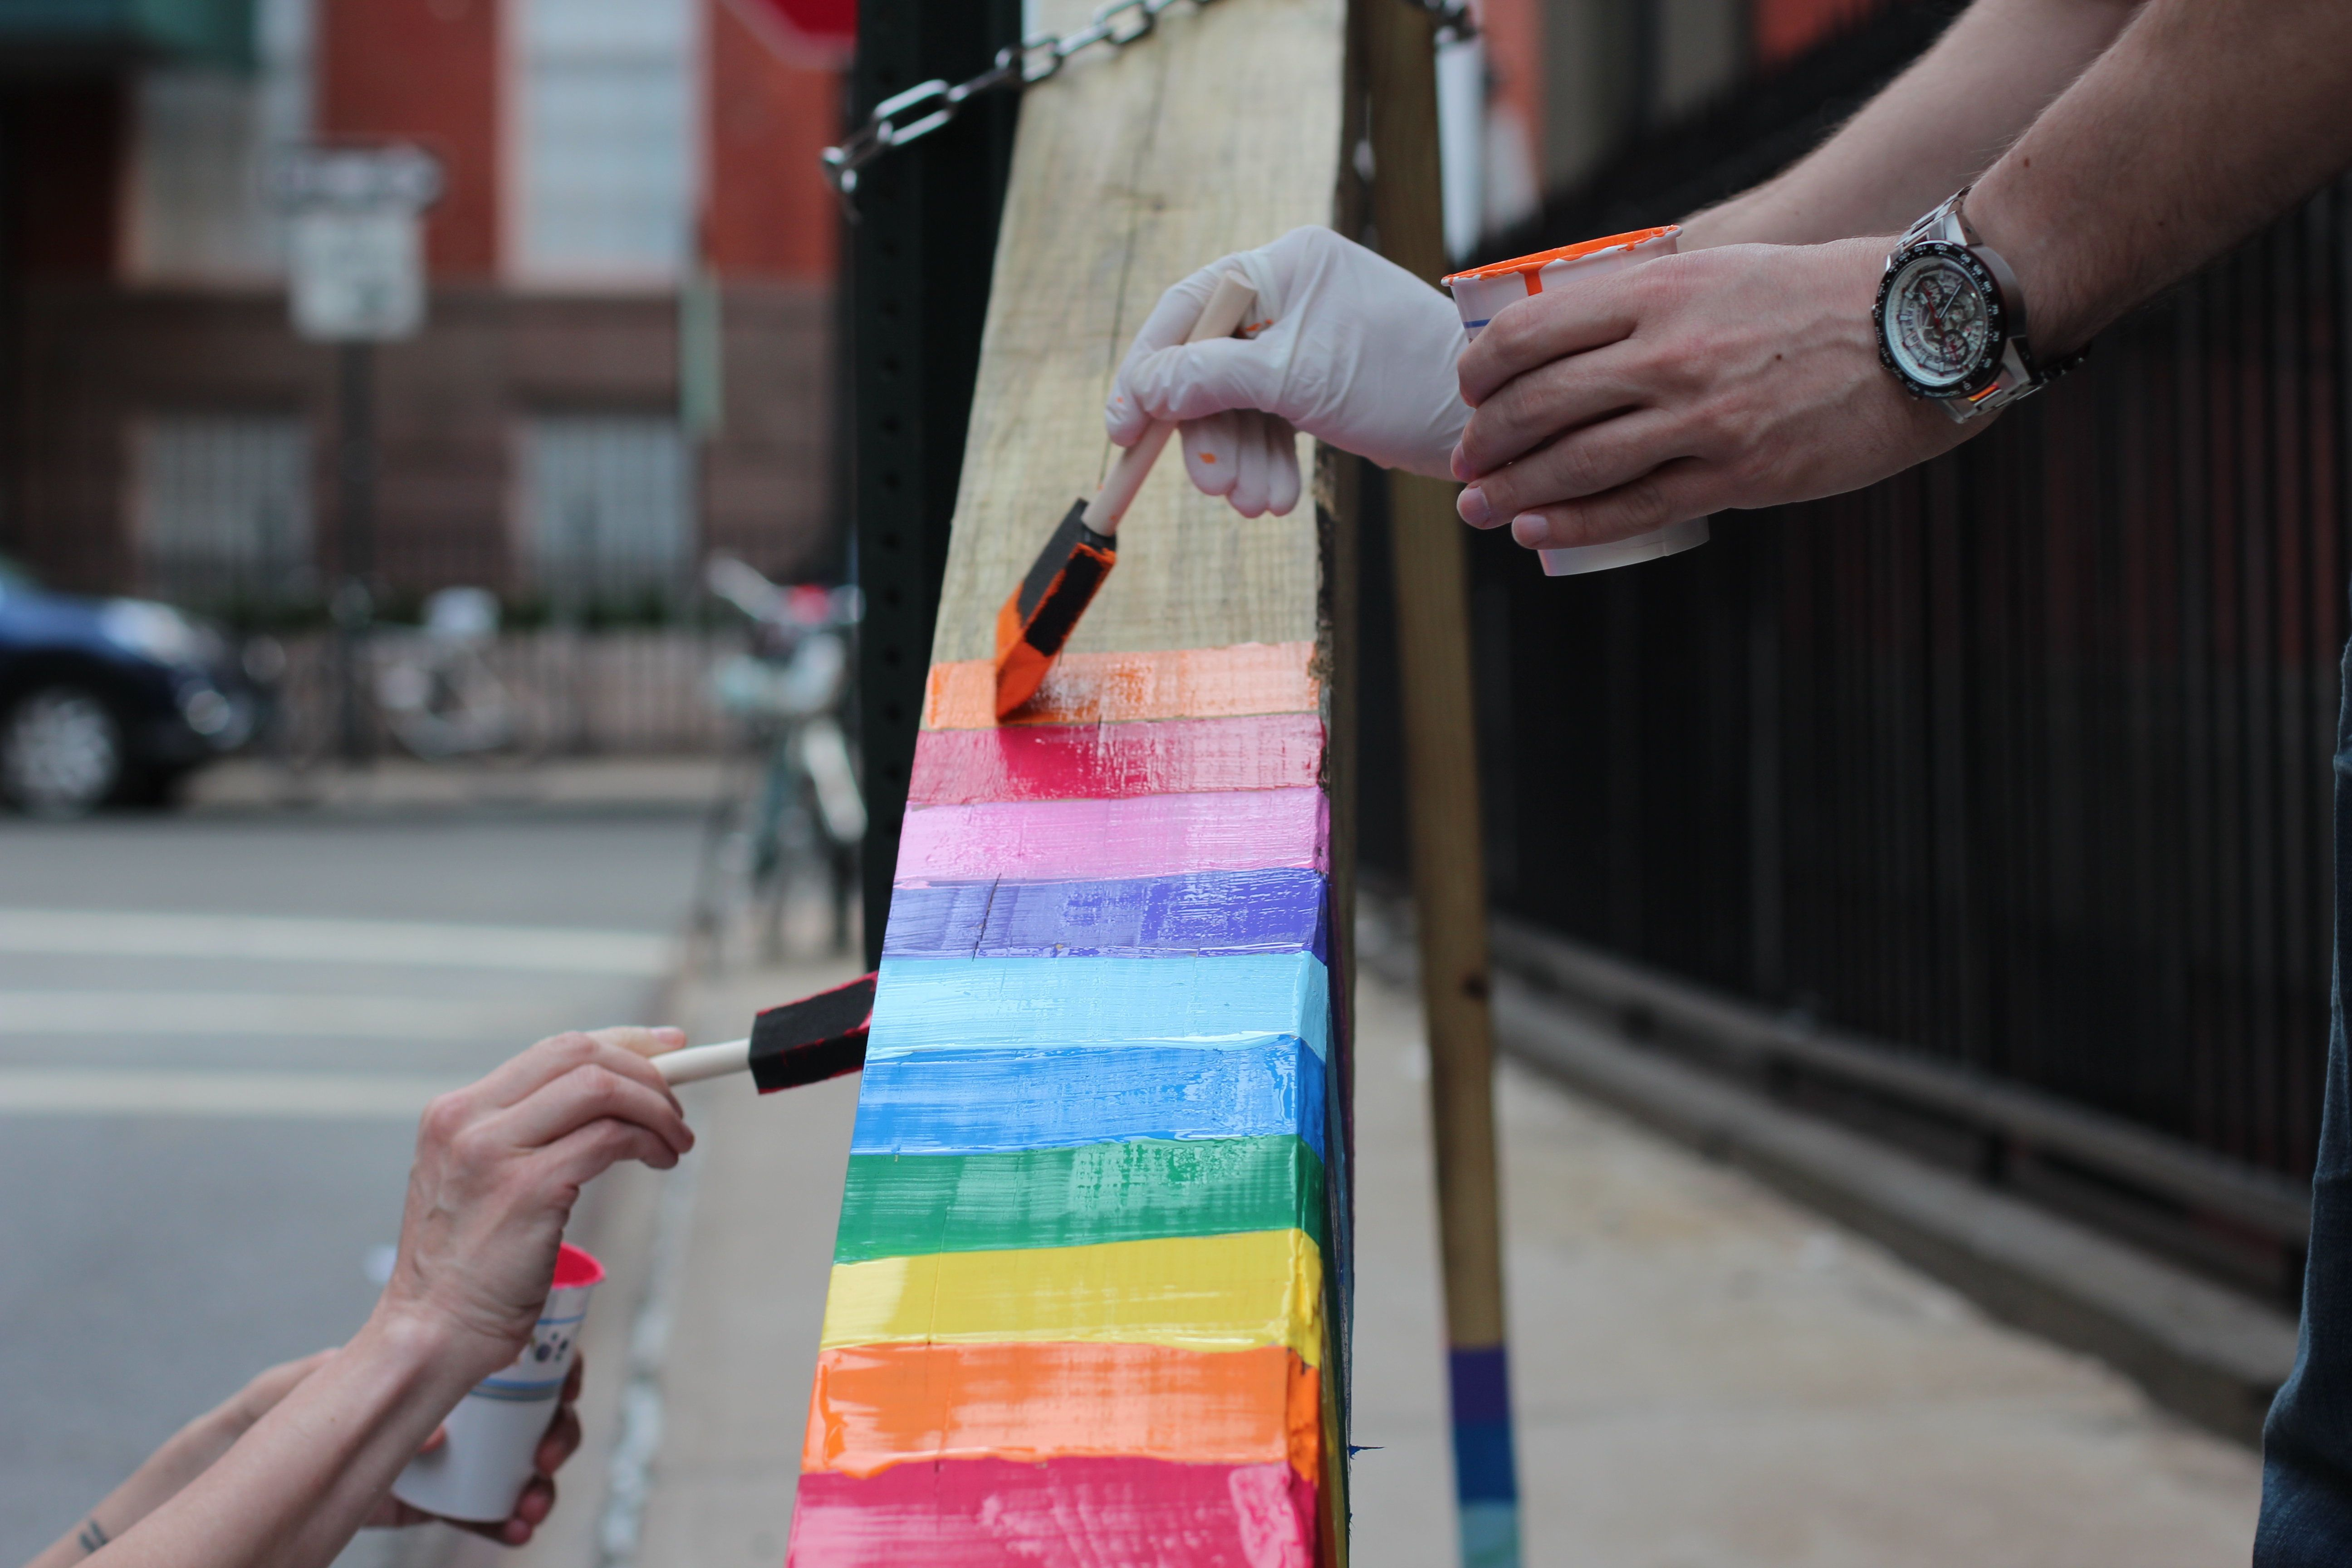 Gay St. residents paintinga cross that appeared on their block.